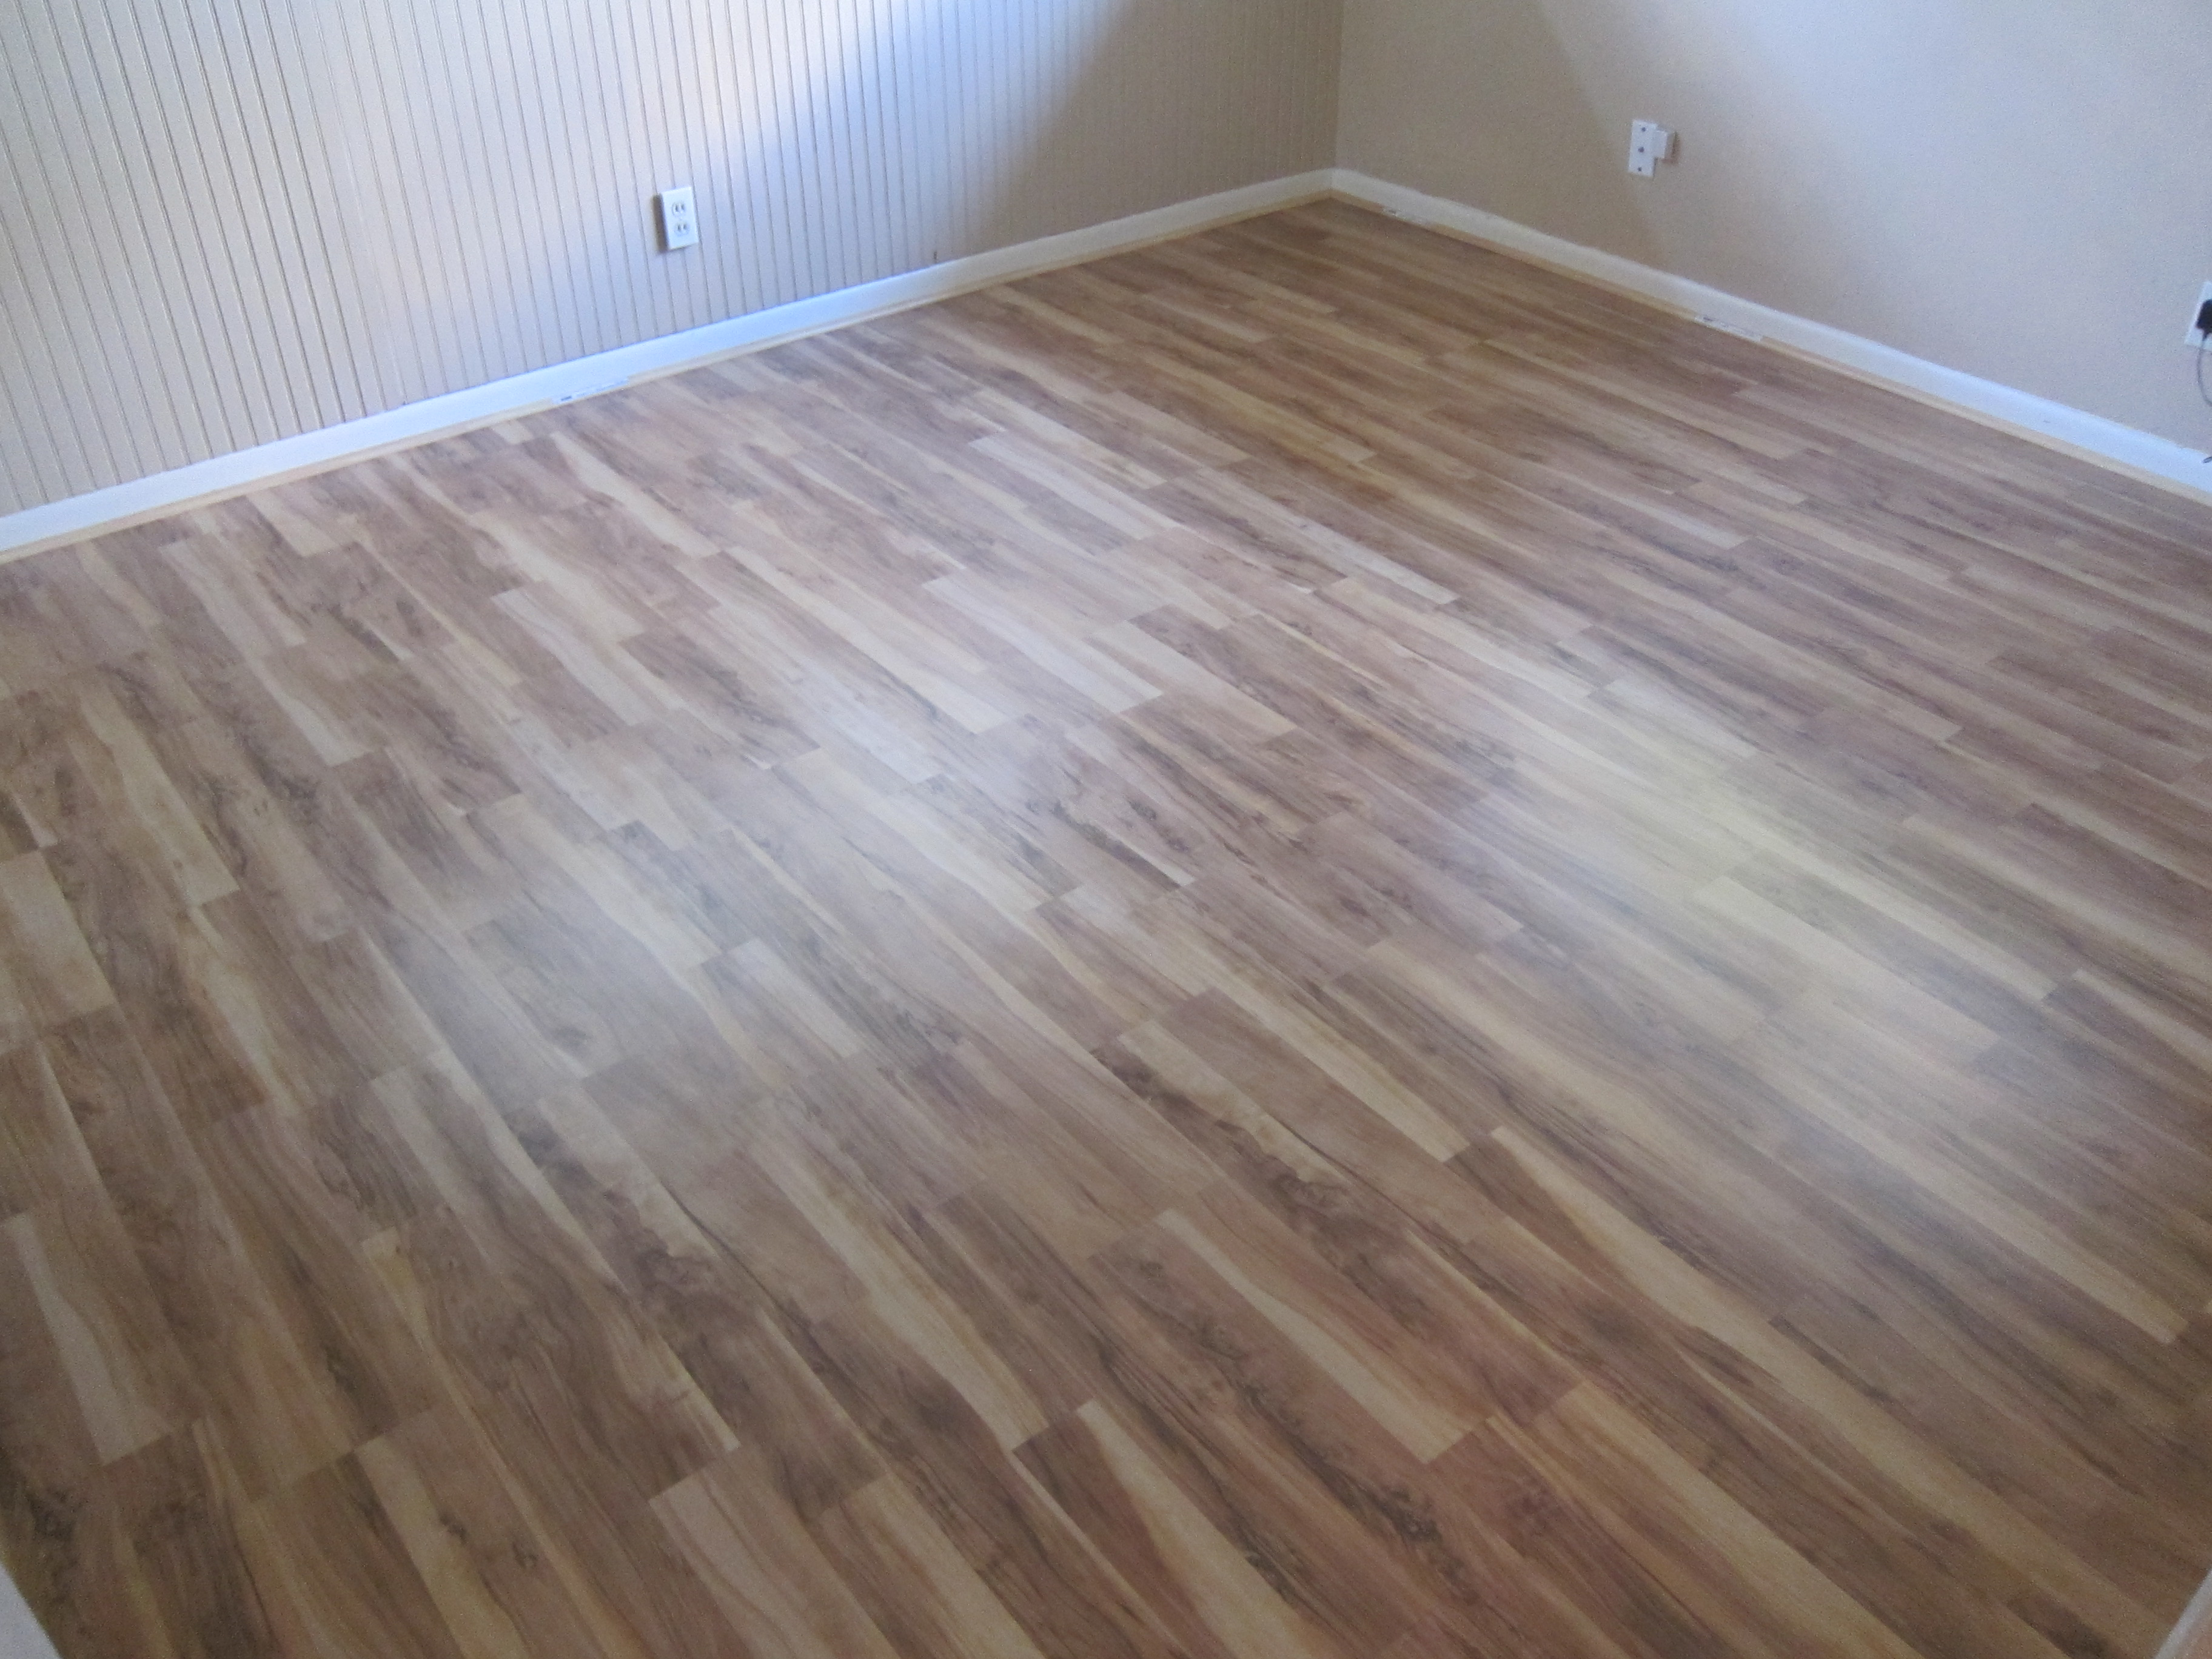 glueless laminate flooring install prep steps. Black Bedroom Furniture Sets. Home Design Ideas